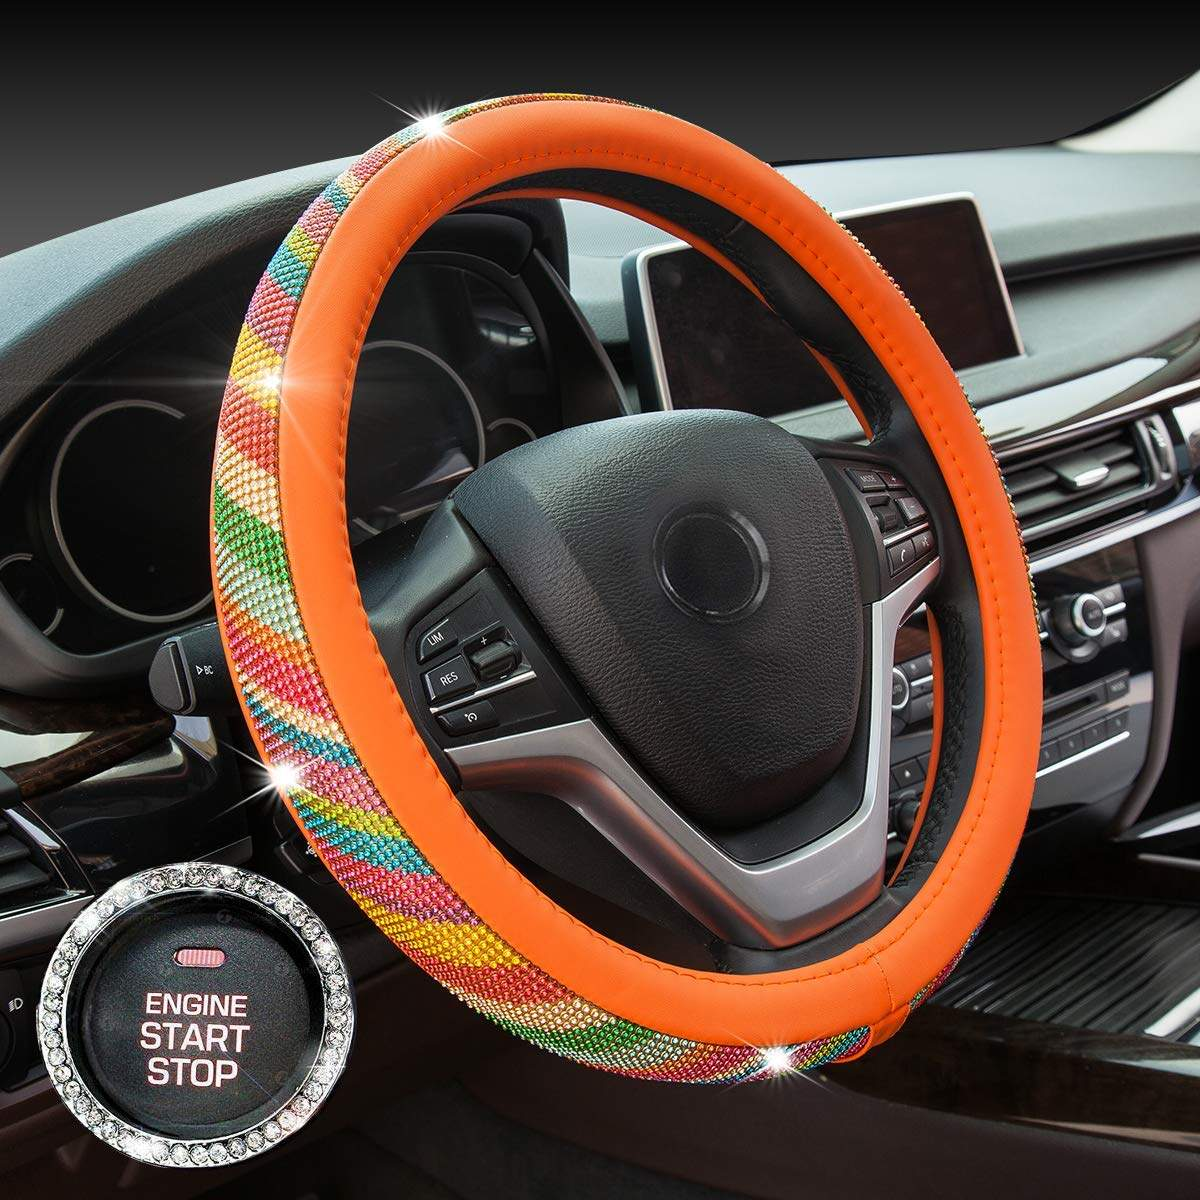 Black Friday Deals: Steering Wheel Cover